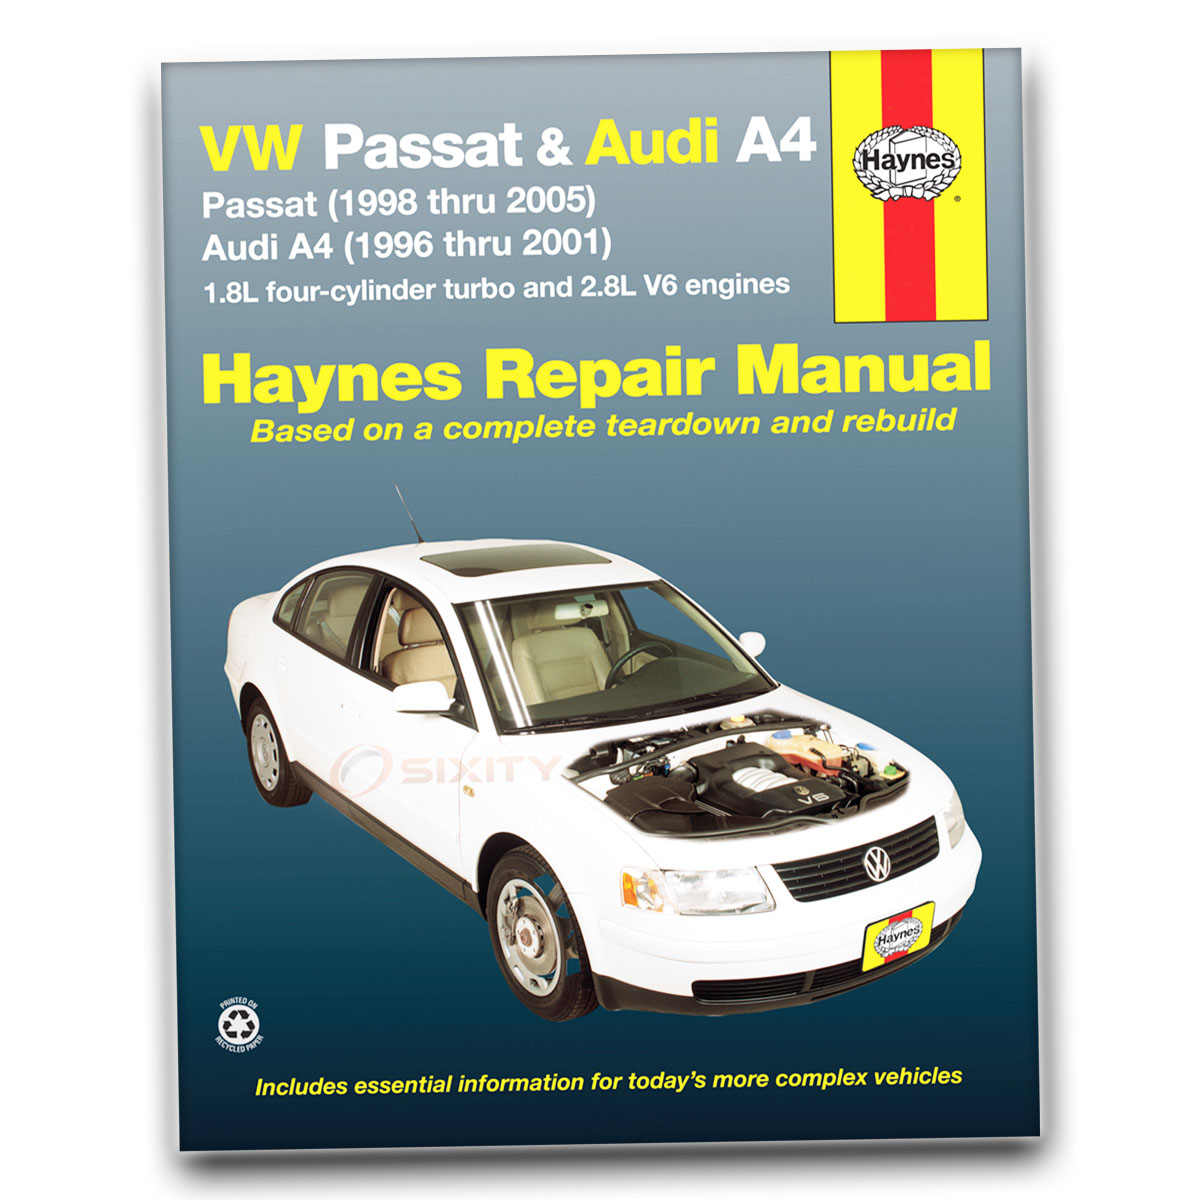 2003 Volkswagen Passat Manual Book Online User 1998 Wagon Fuse Diagram Vw Haynes Repair Gl Tdi Gls 4 Motion Glx W8 Rh Ebay Com Box Engine